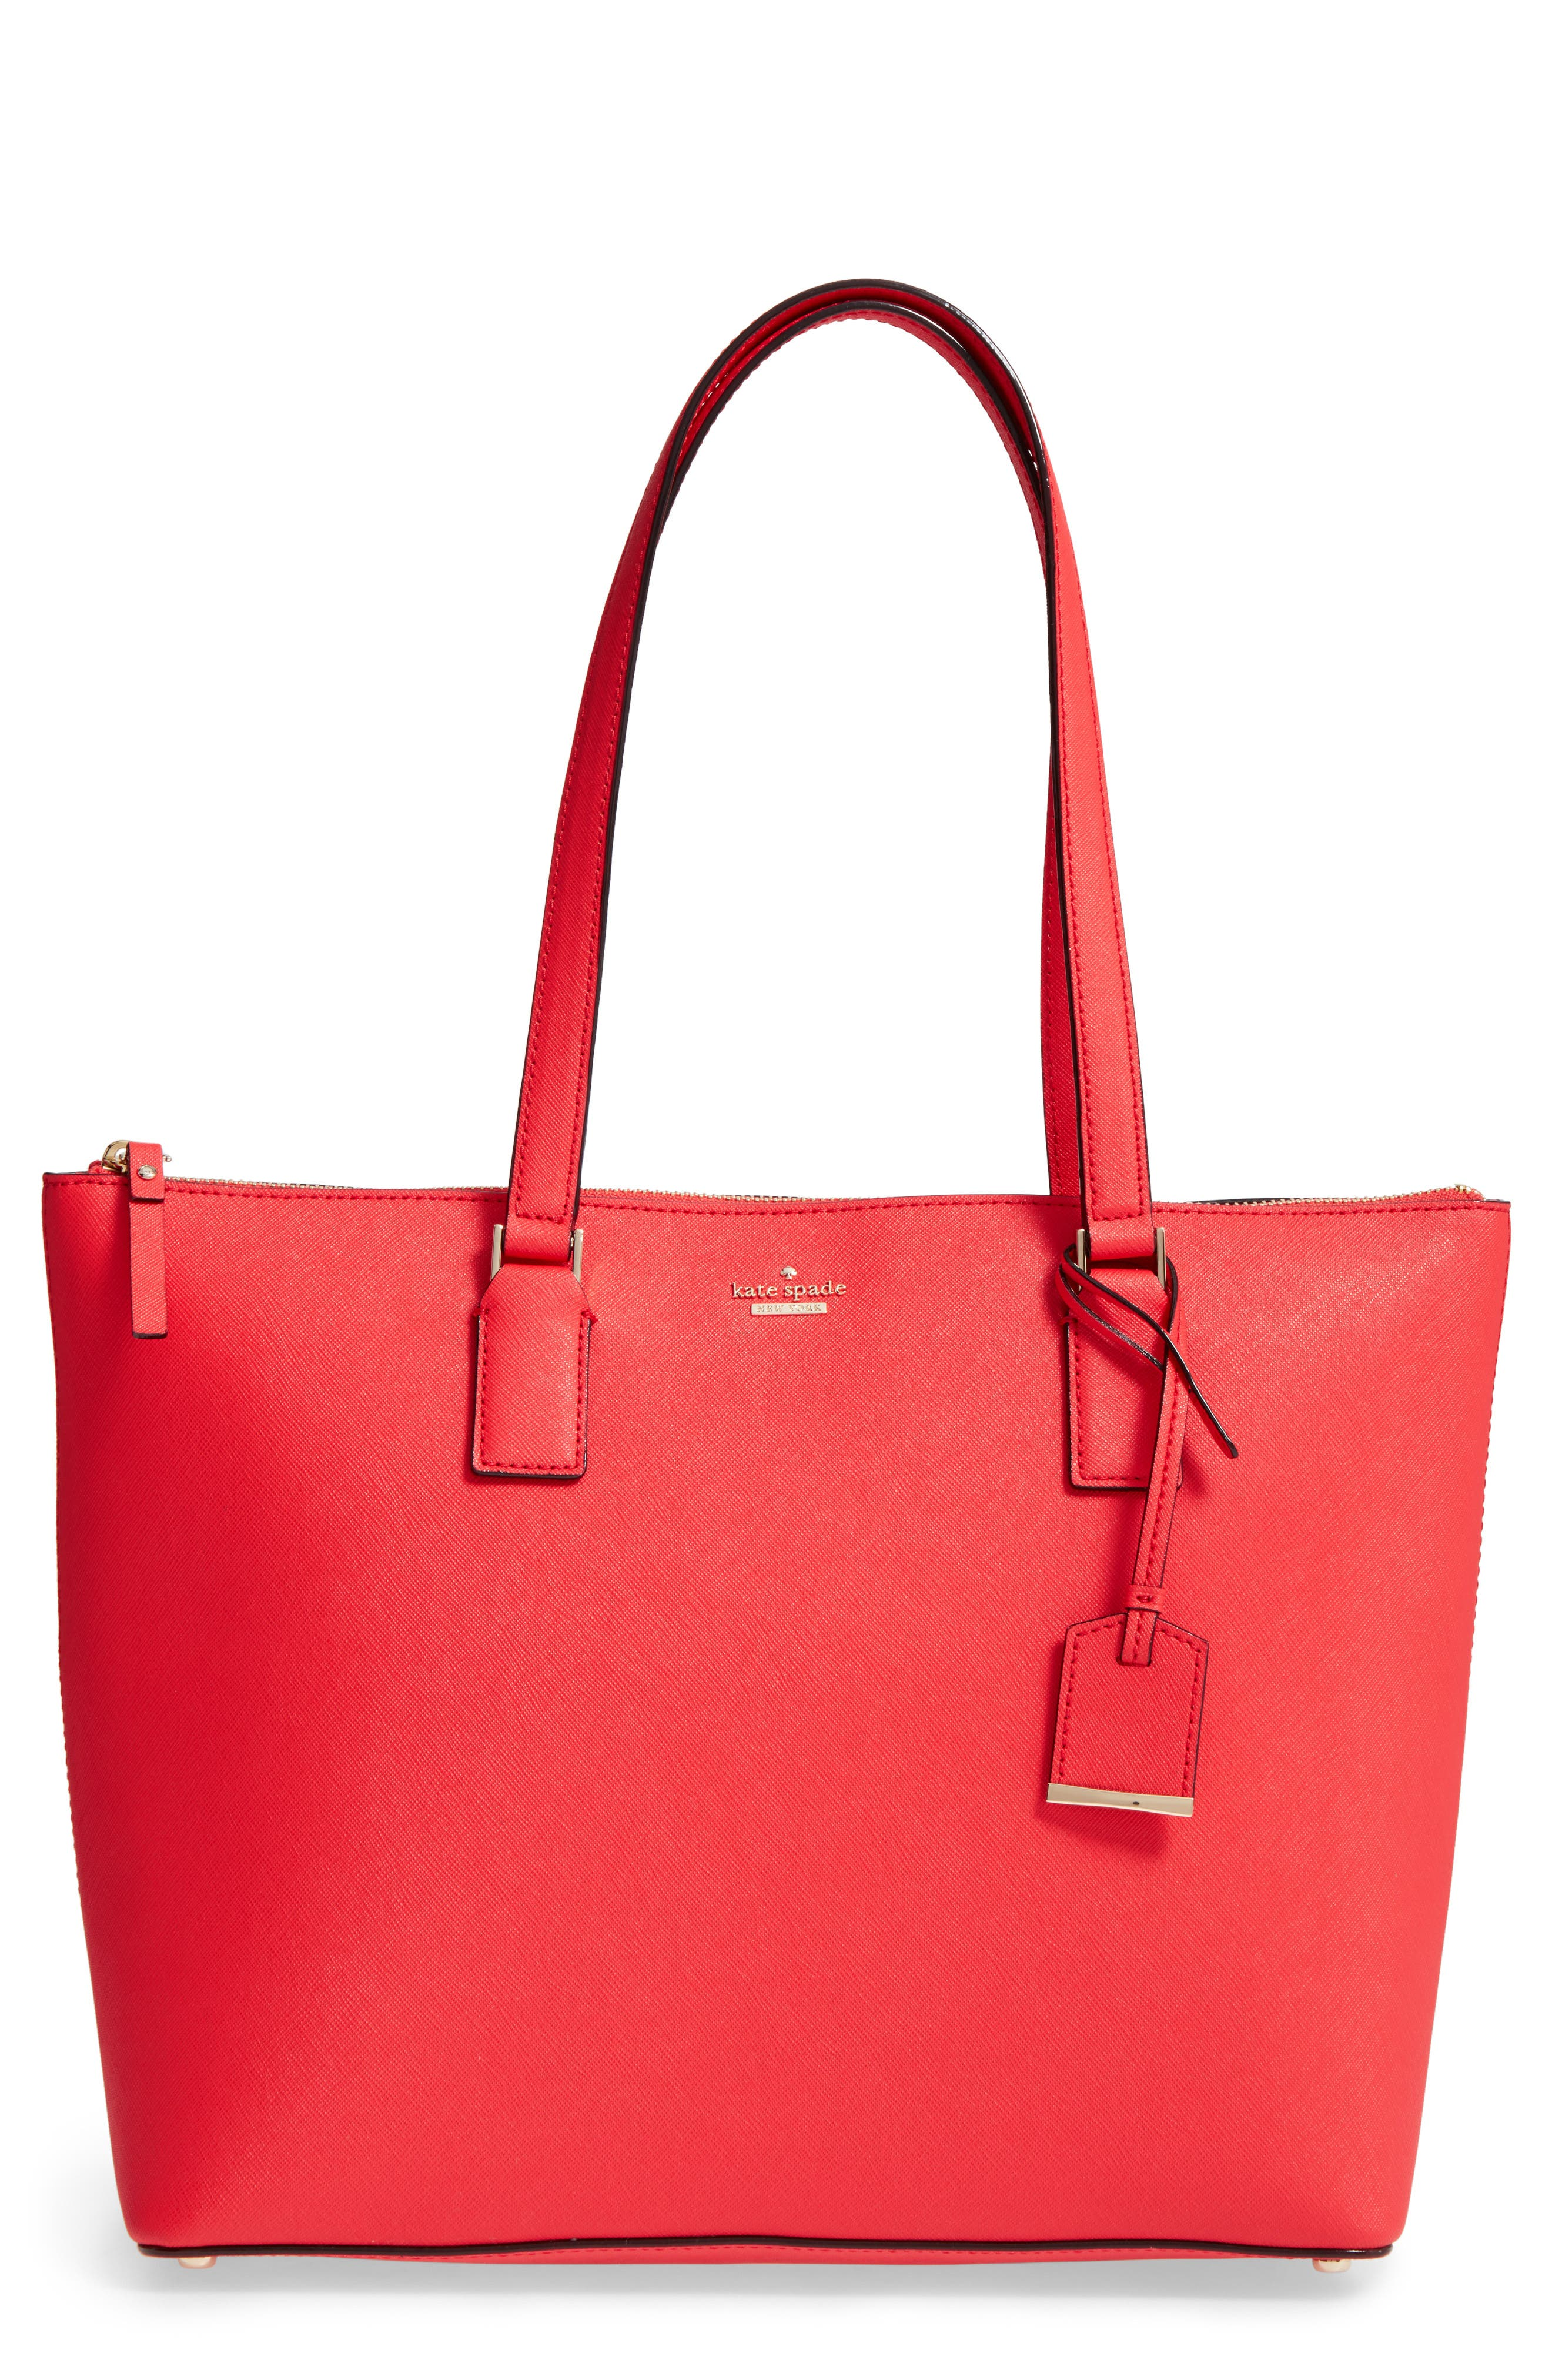 KATE SPADE NEW YORK 'cameron street - lucie'